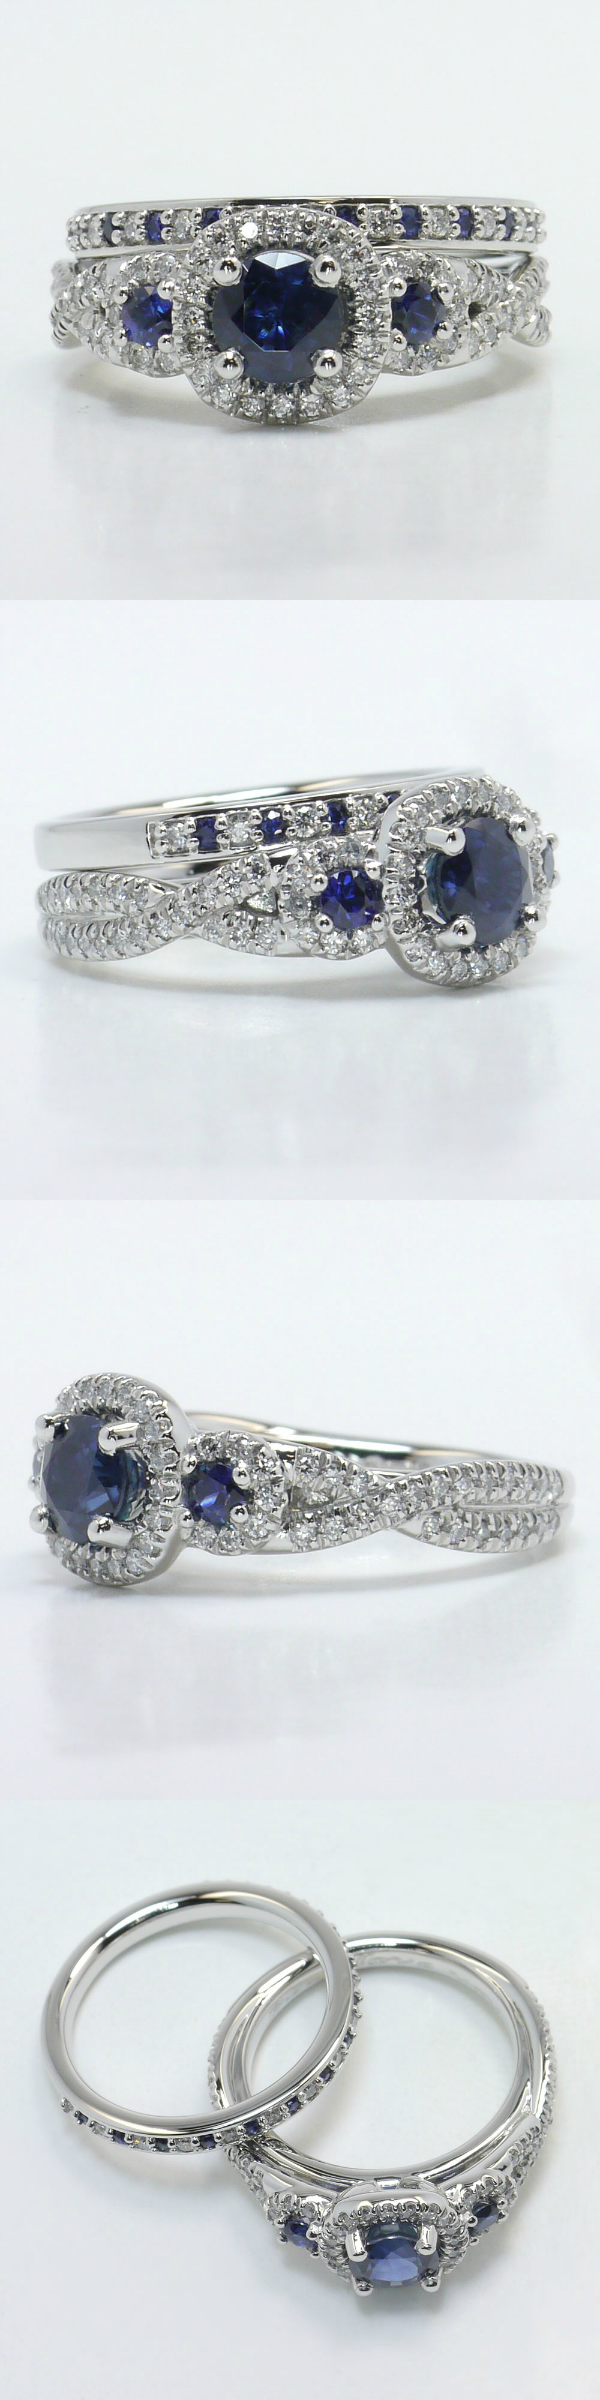 rings creative cost ring idea for her wedding guide sapphire